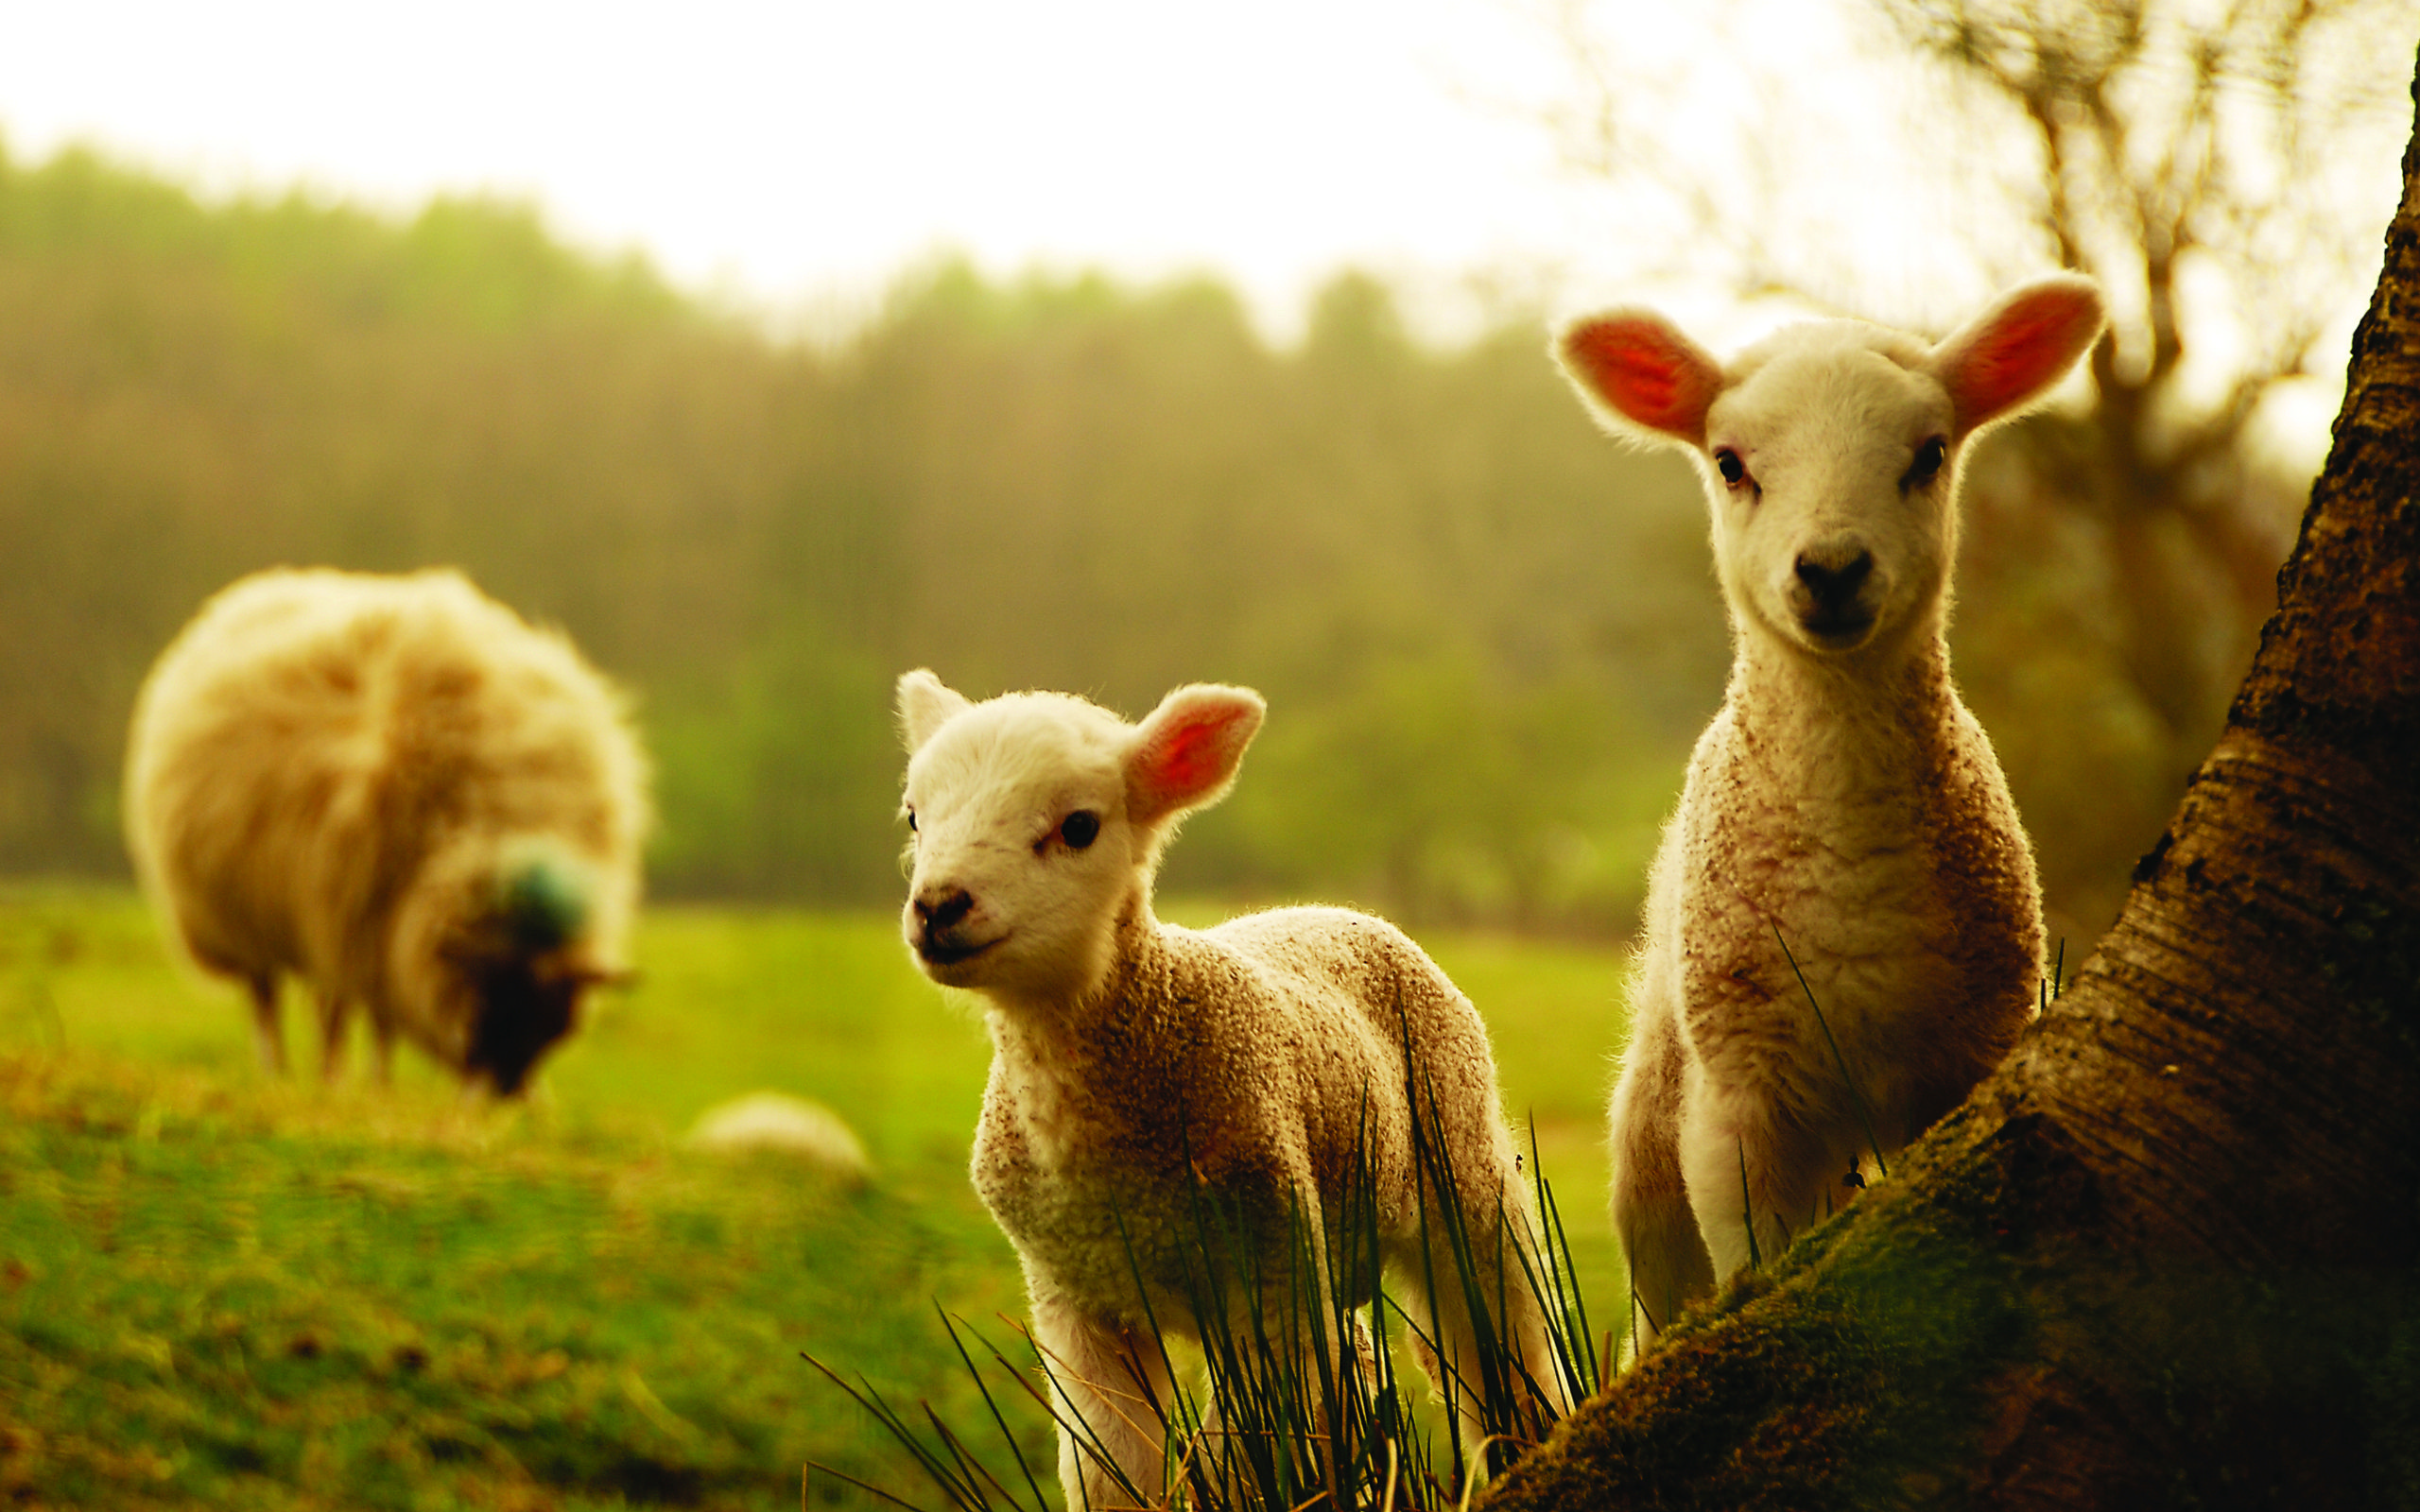 Sheep 9 Animals Minimalistic Wallpapers For Iphone: Pin By Rebecca Carvalho On Ideas To Paint